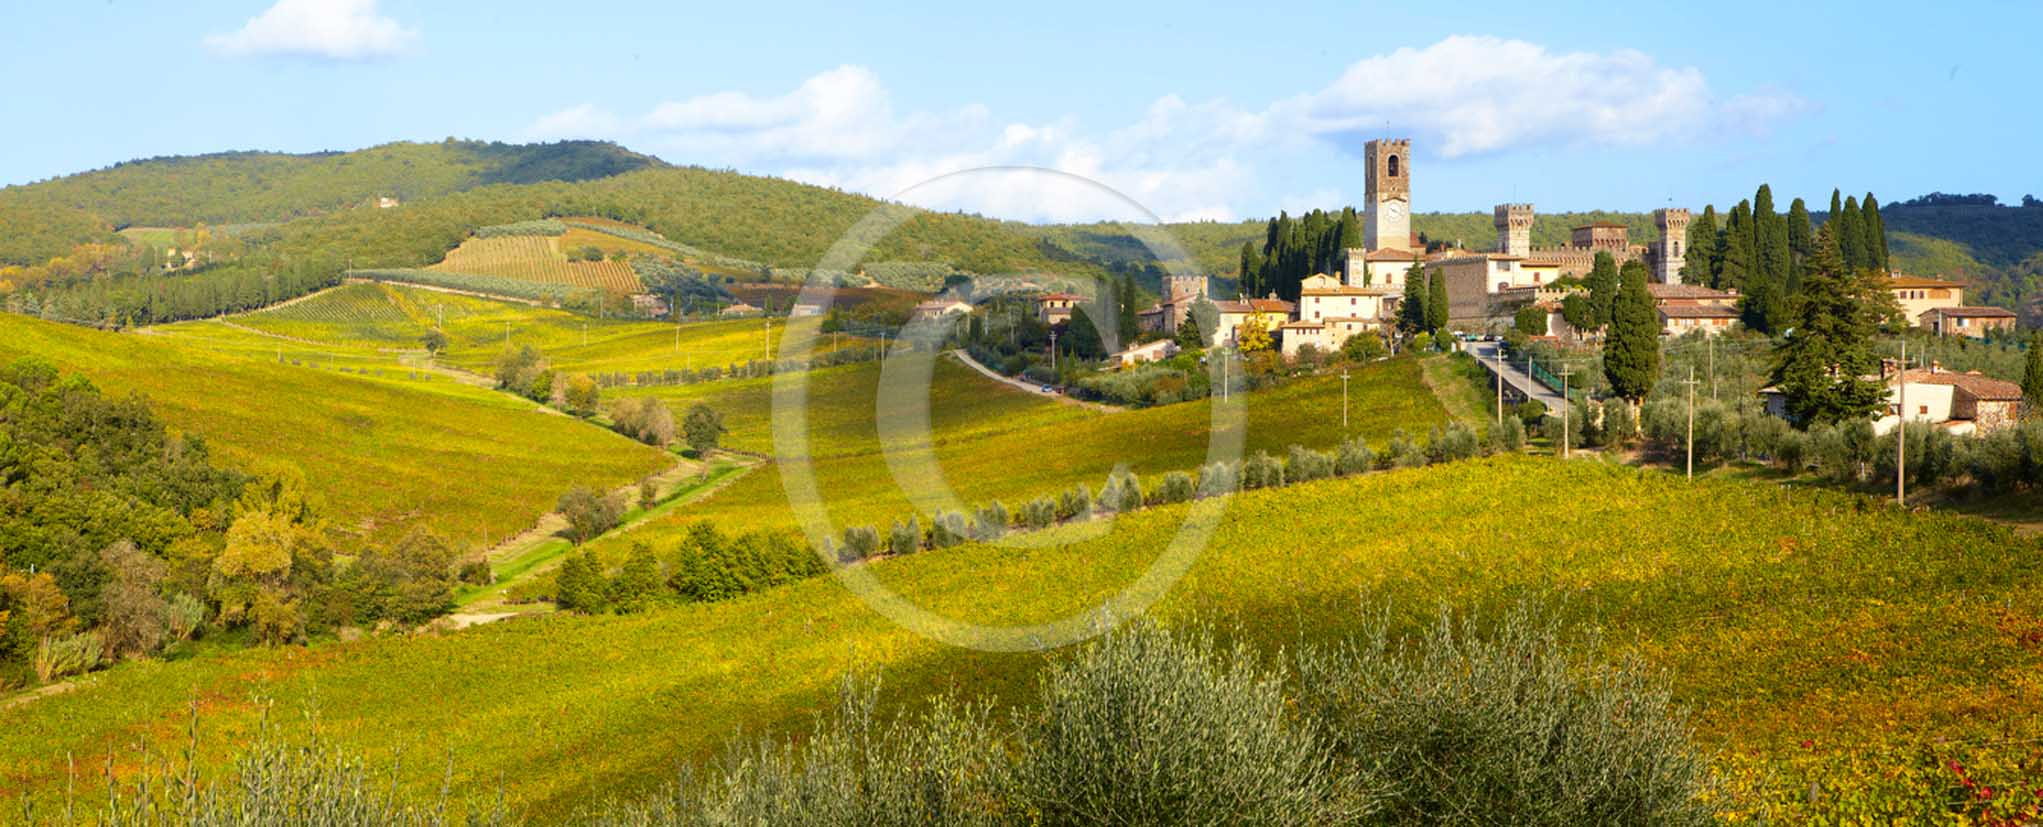 2011 - Panoramic view of vineyard in Badia a Passignano abbay in Chianti Classico land.